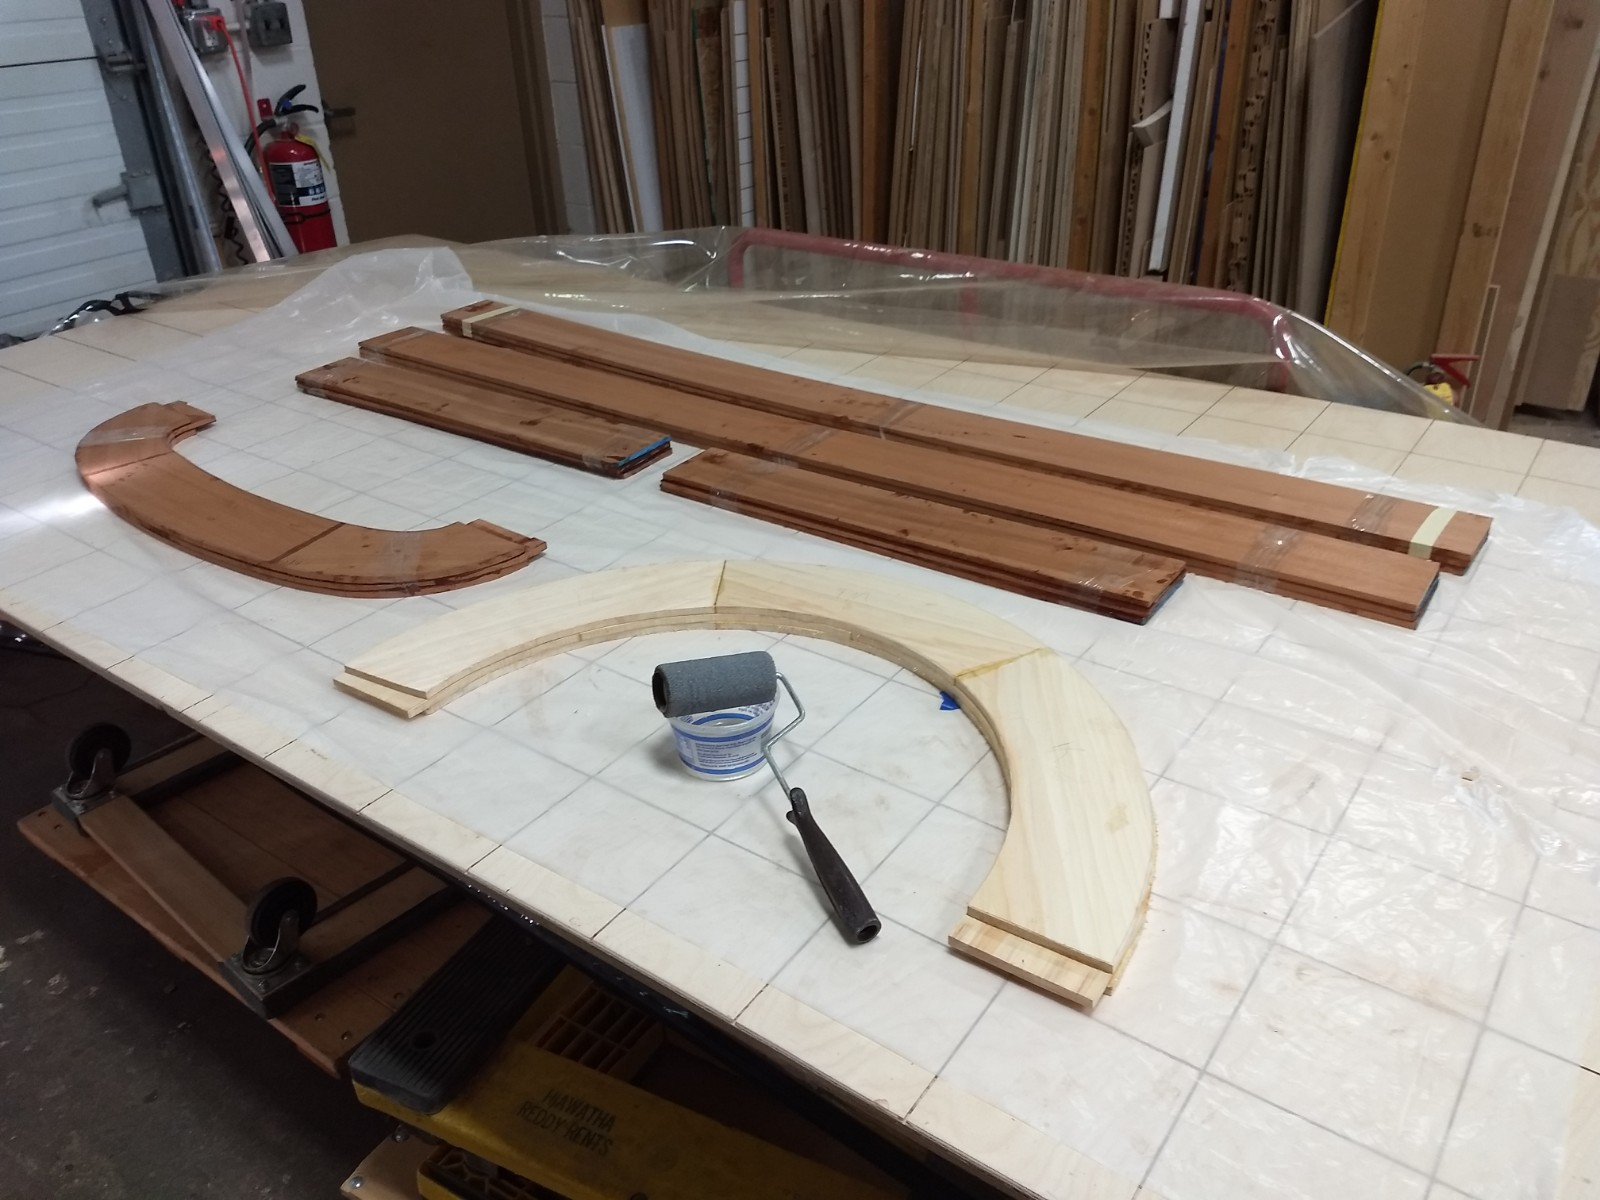 Rolling on the epoxy